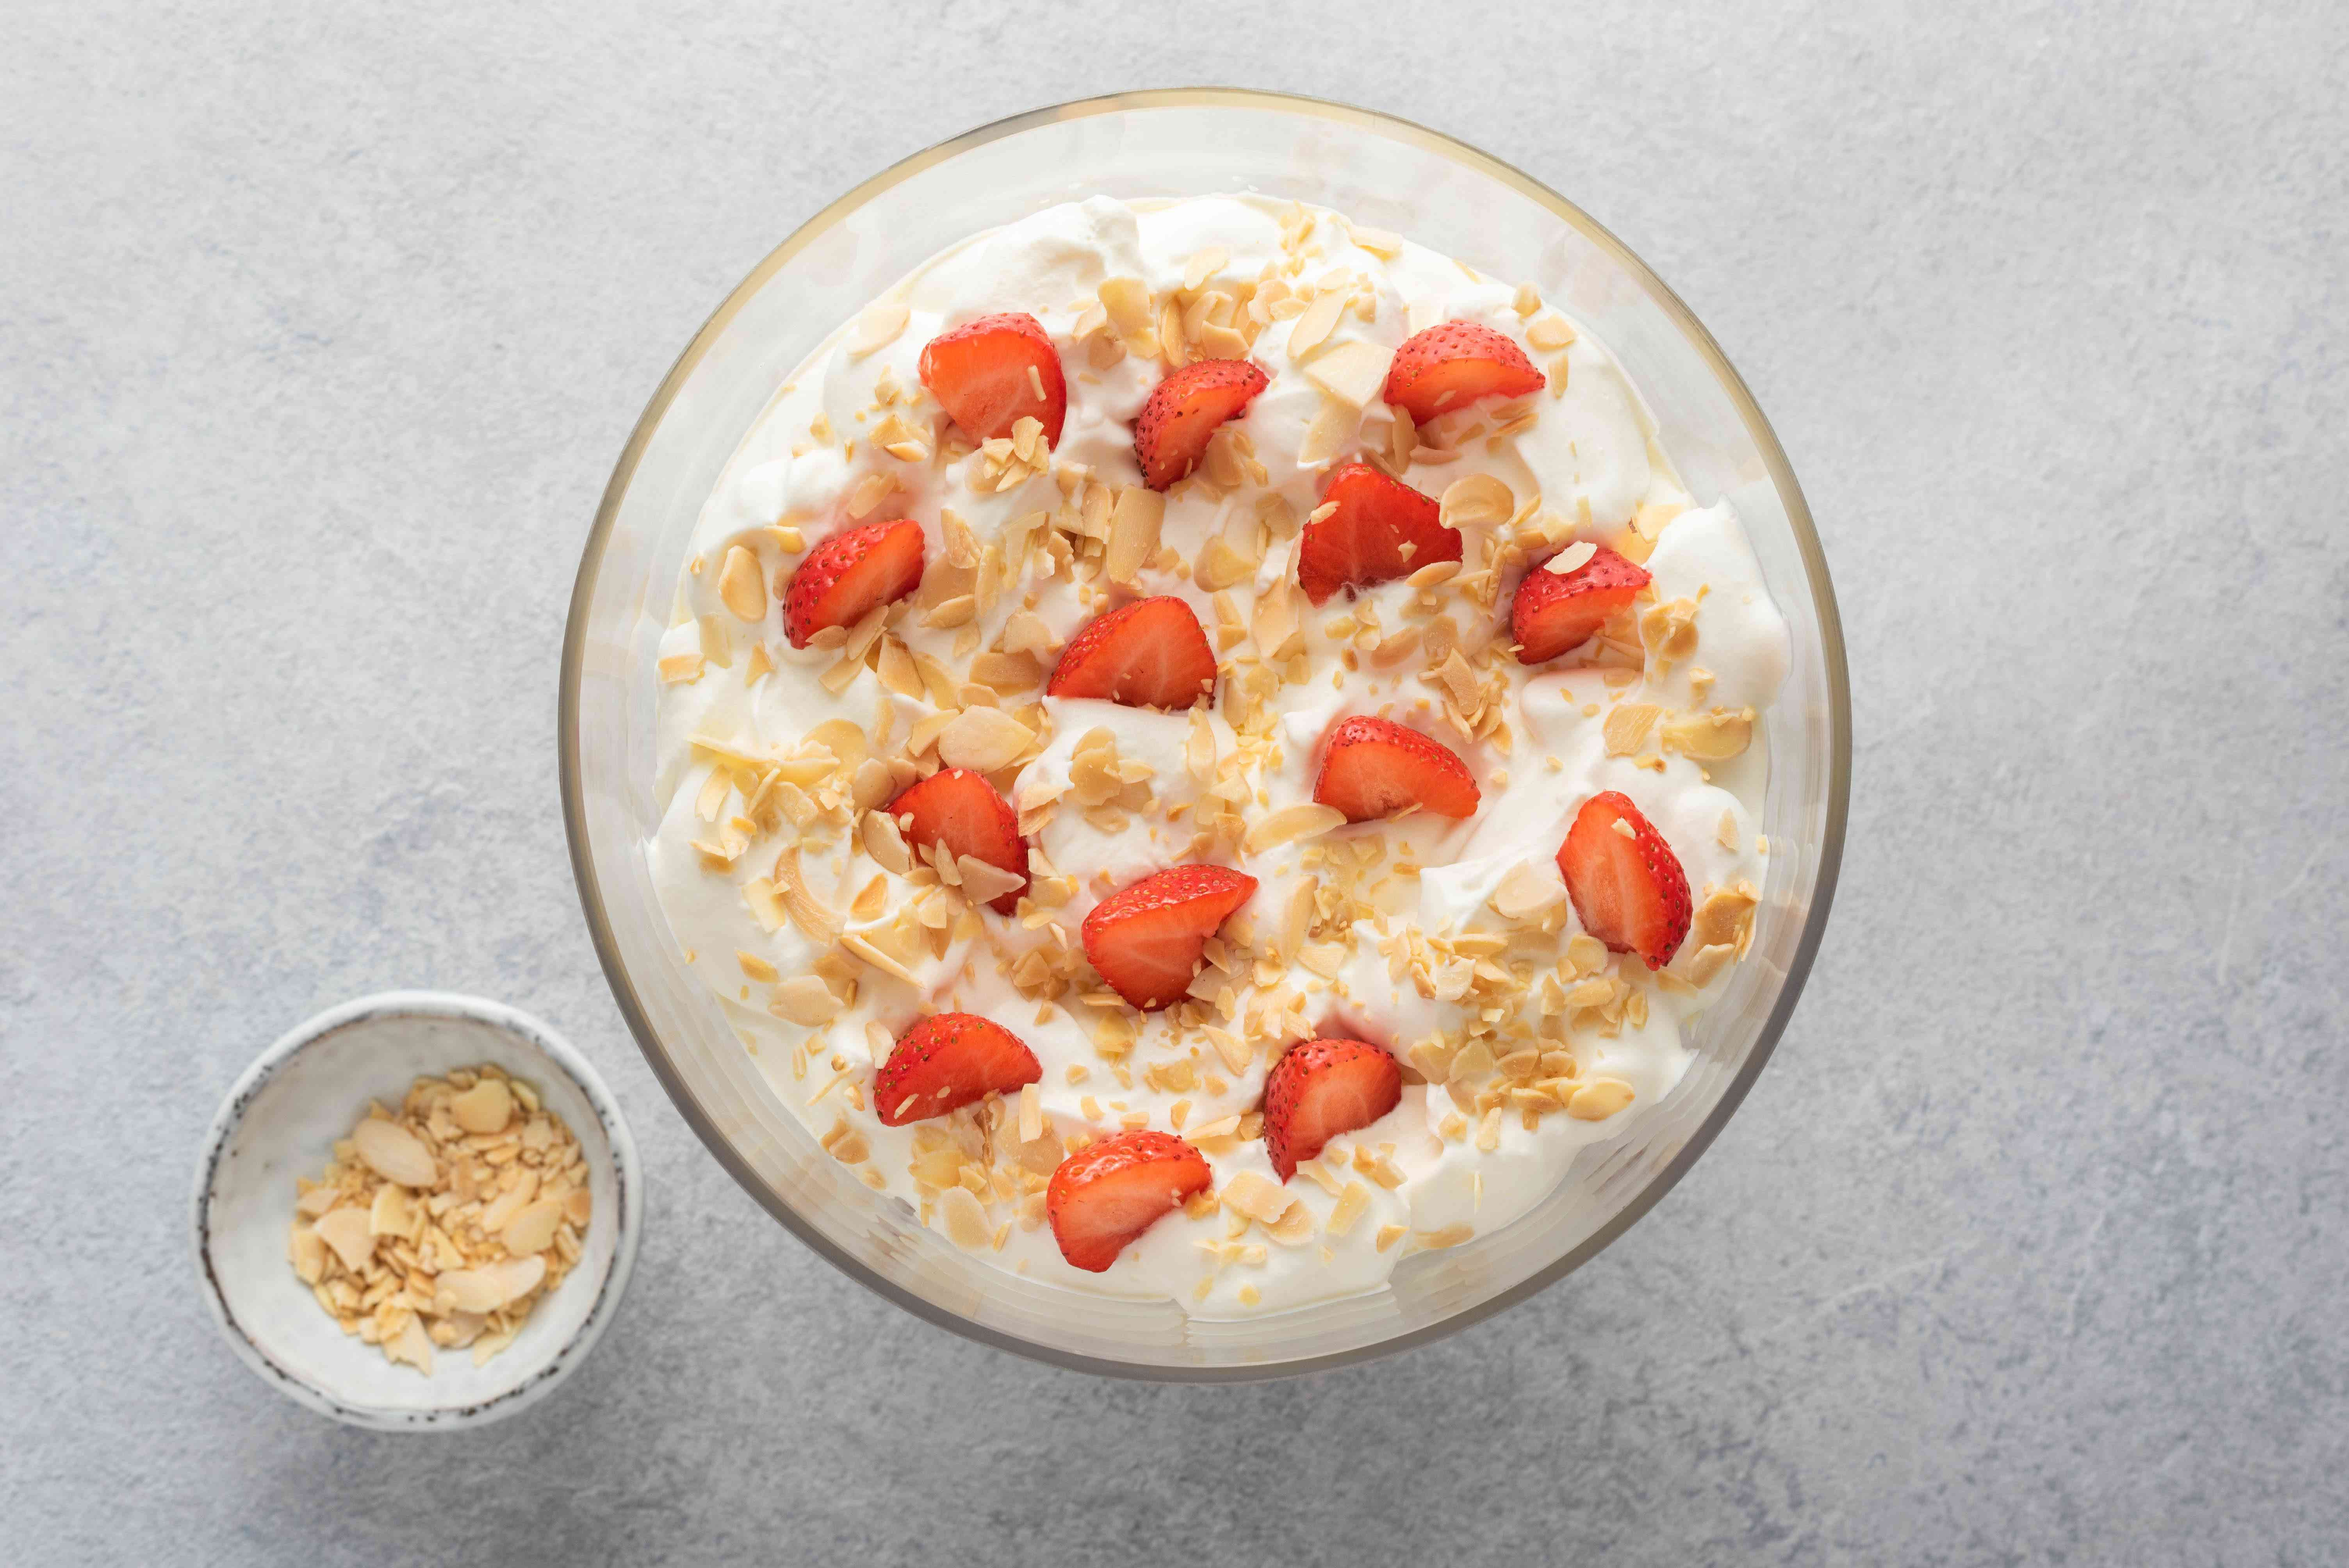 Quick sherry trifle with strawberries and almonds on top